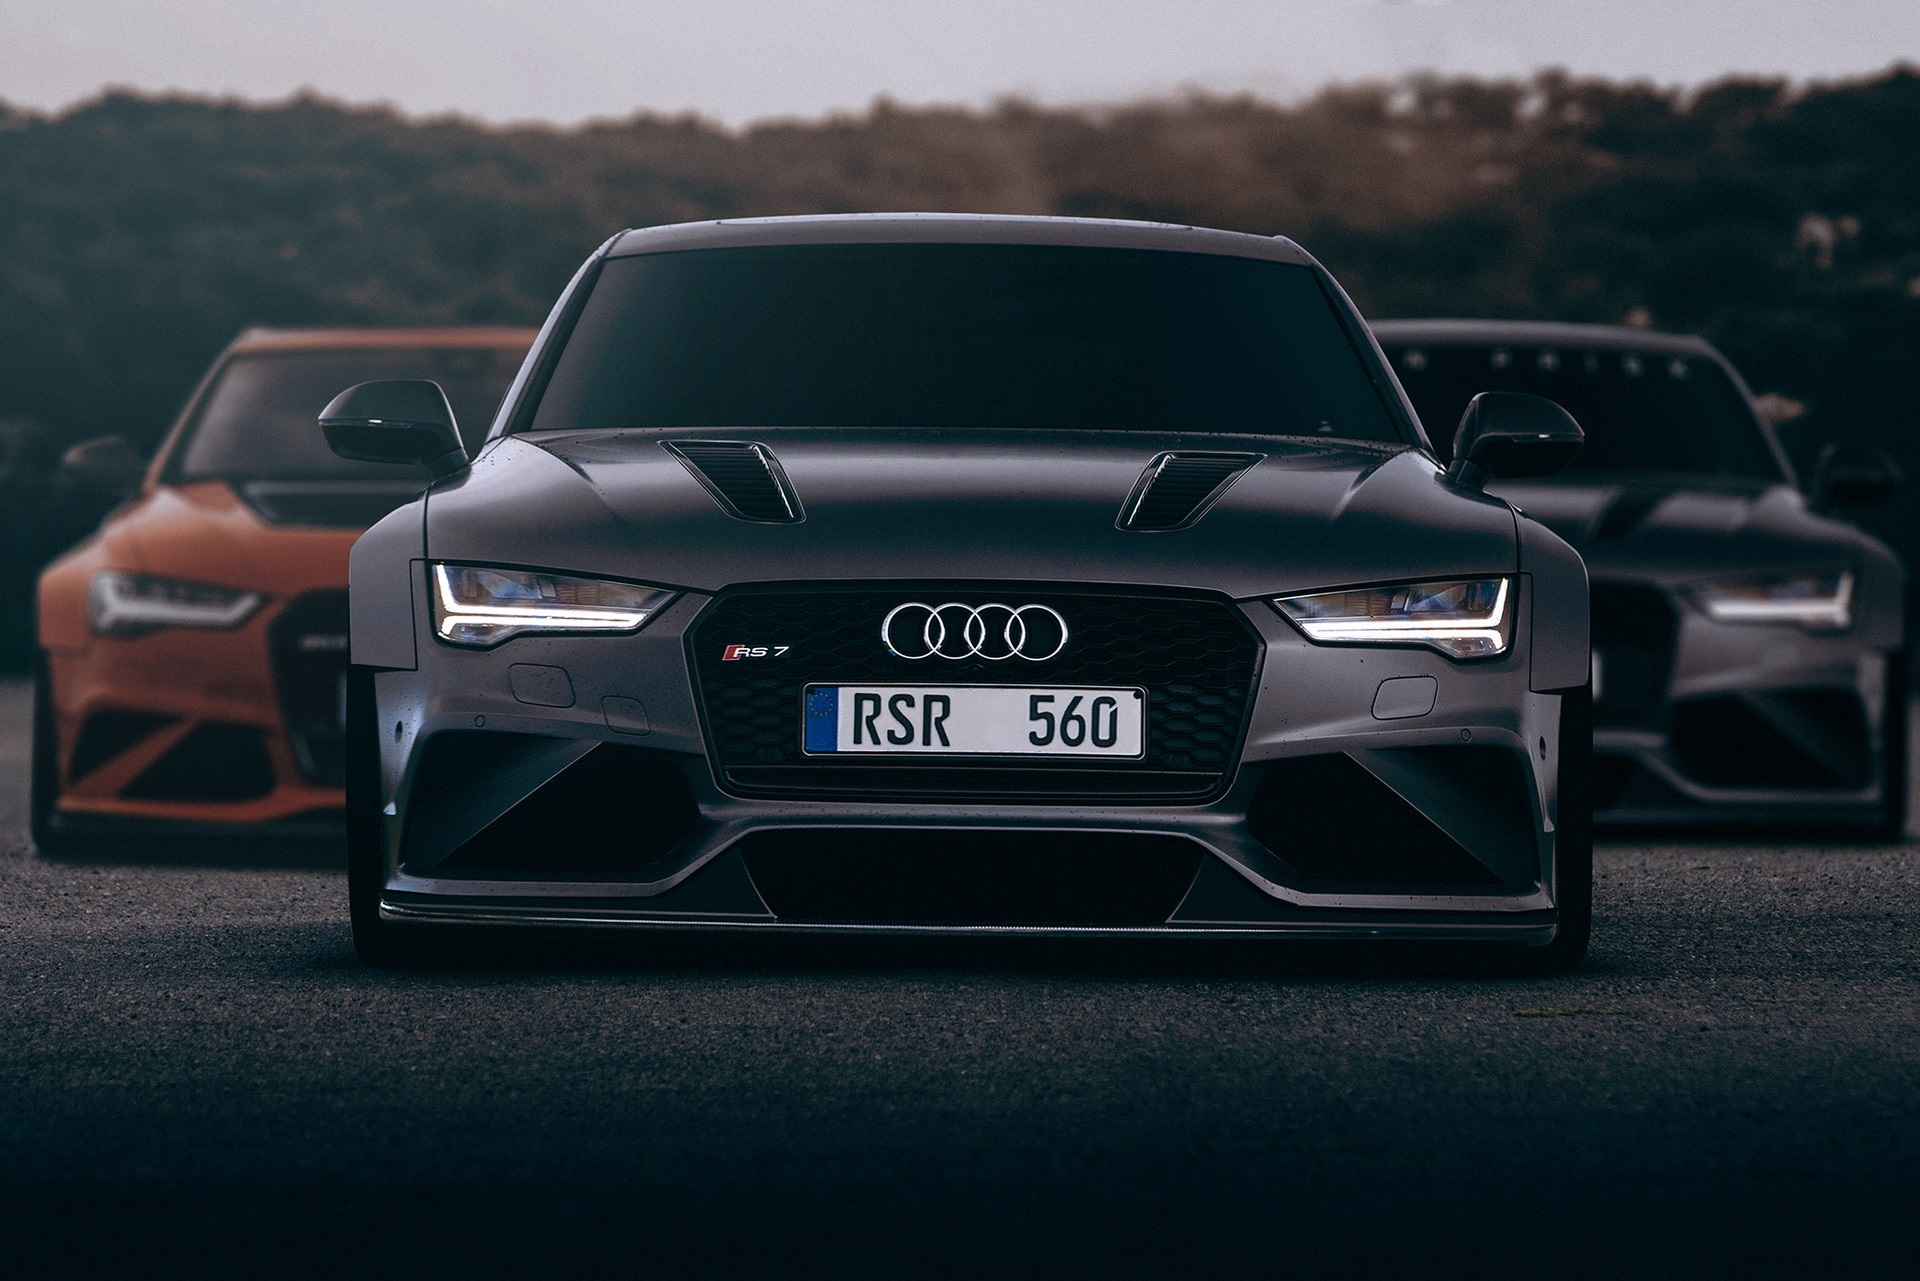 Widebody Audis The Sexiest Cars on Roads 1920x1281